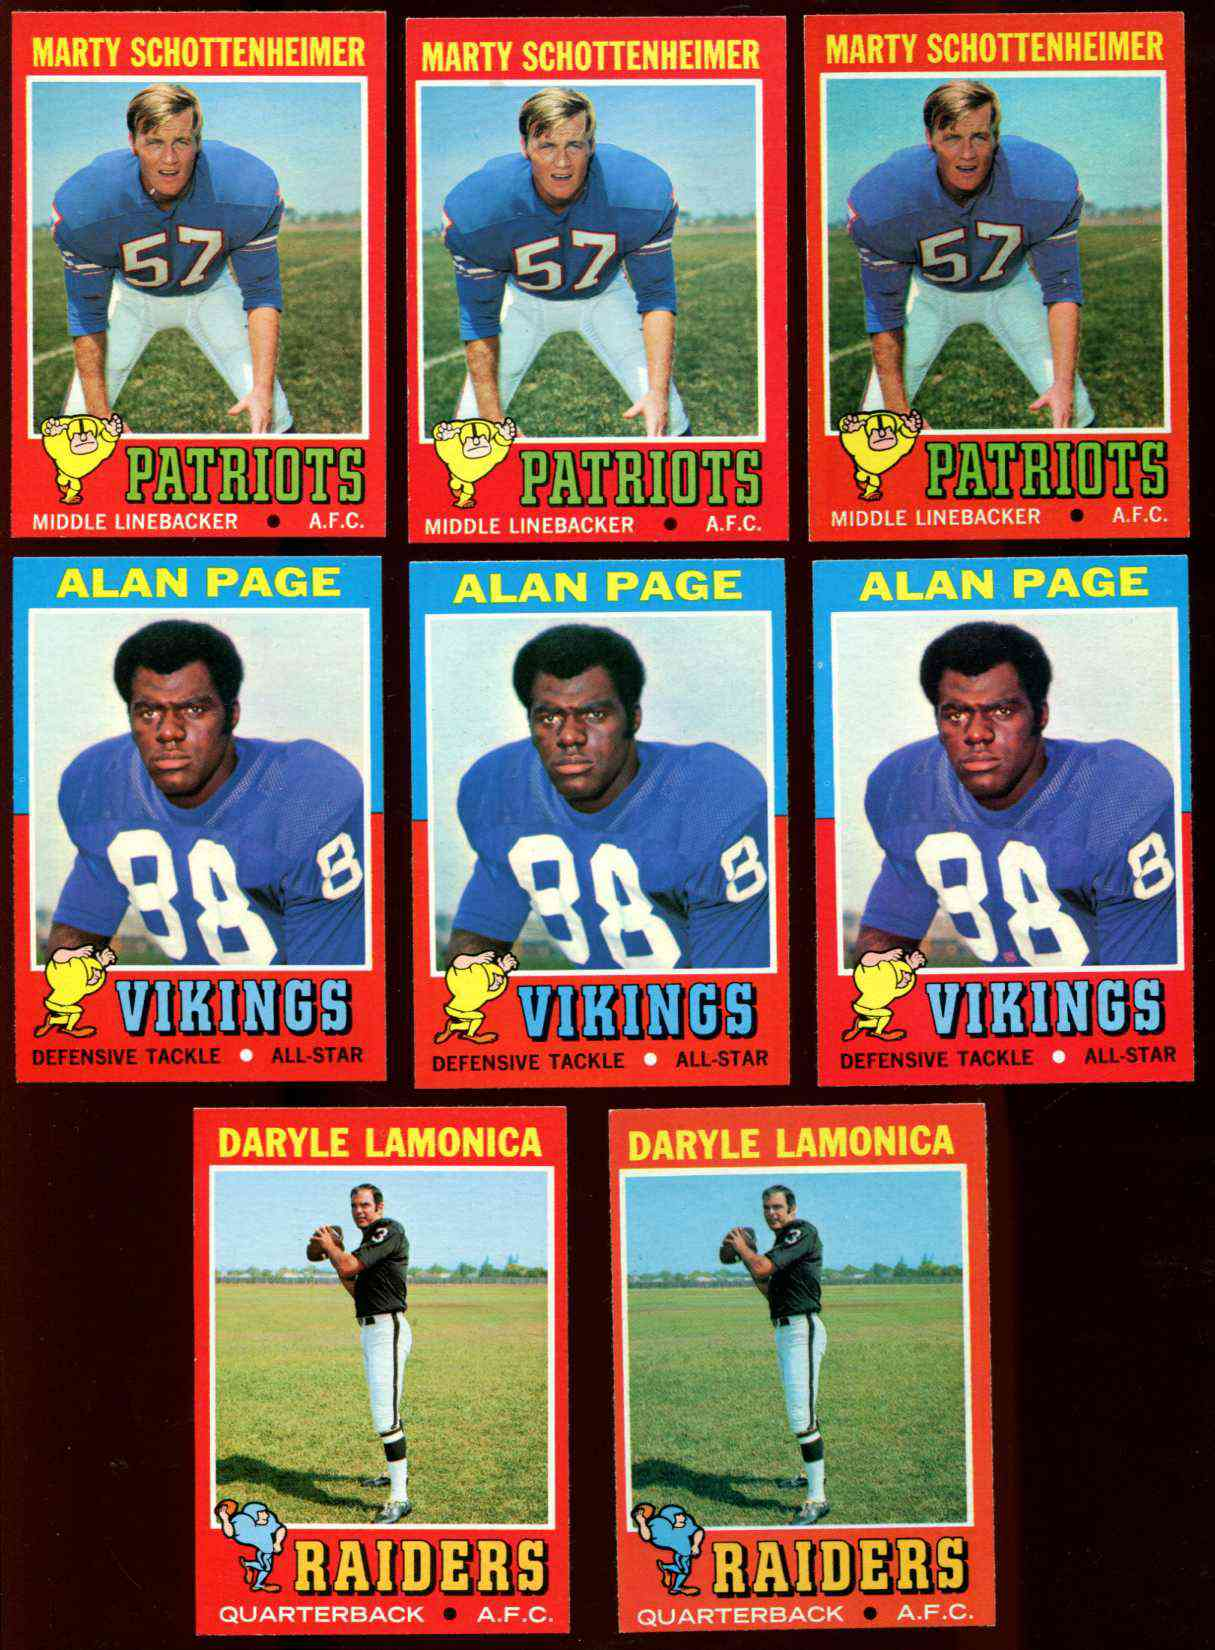 1971 Topps FB #  3 Marty Schottenheimer ROOKIE [#a] (Patriots) Football cards value